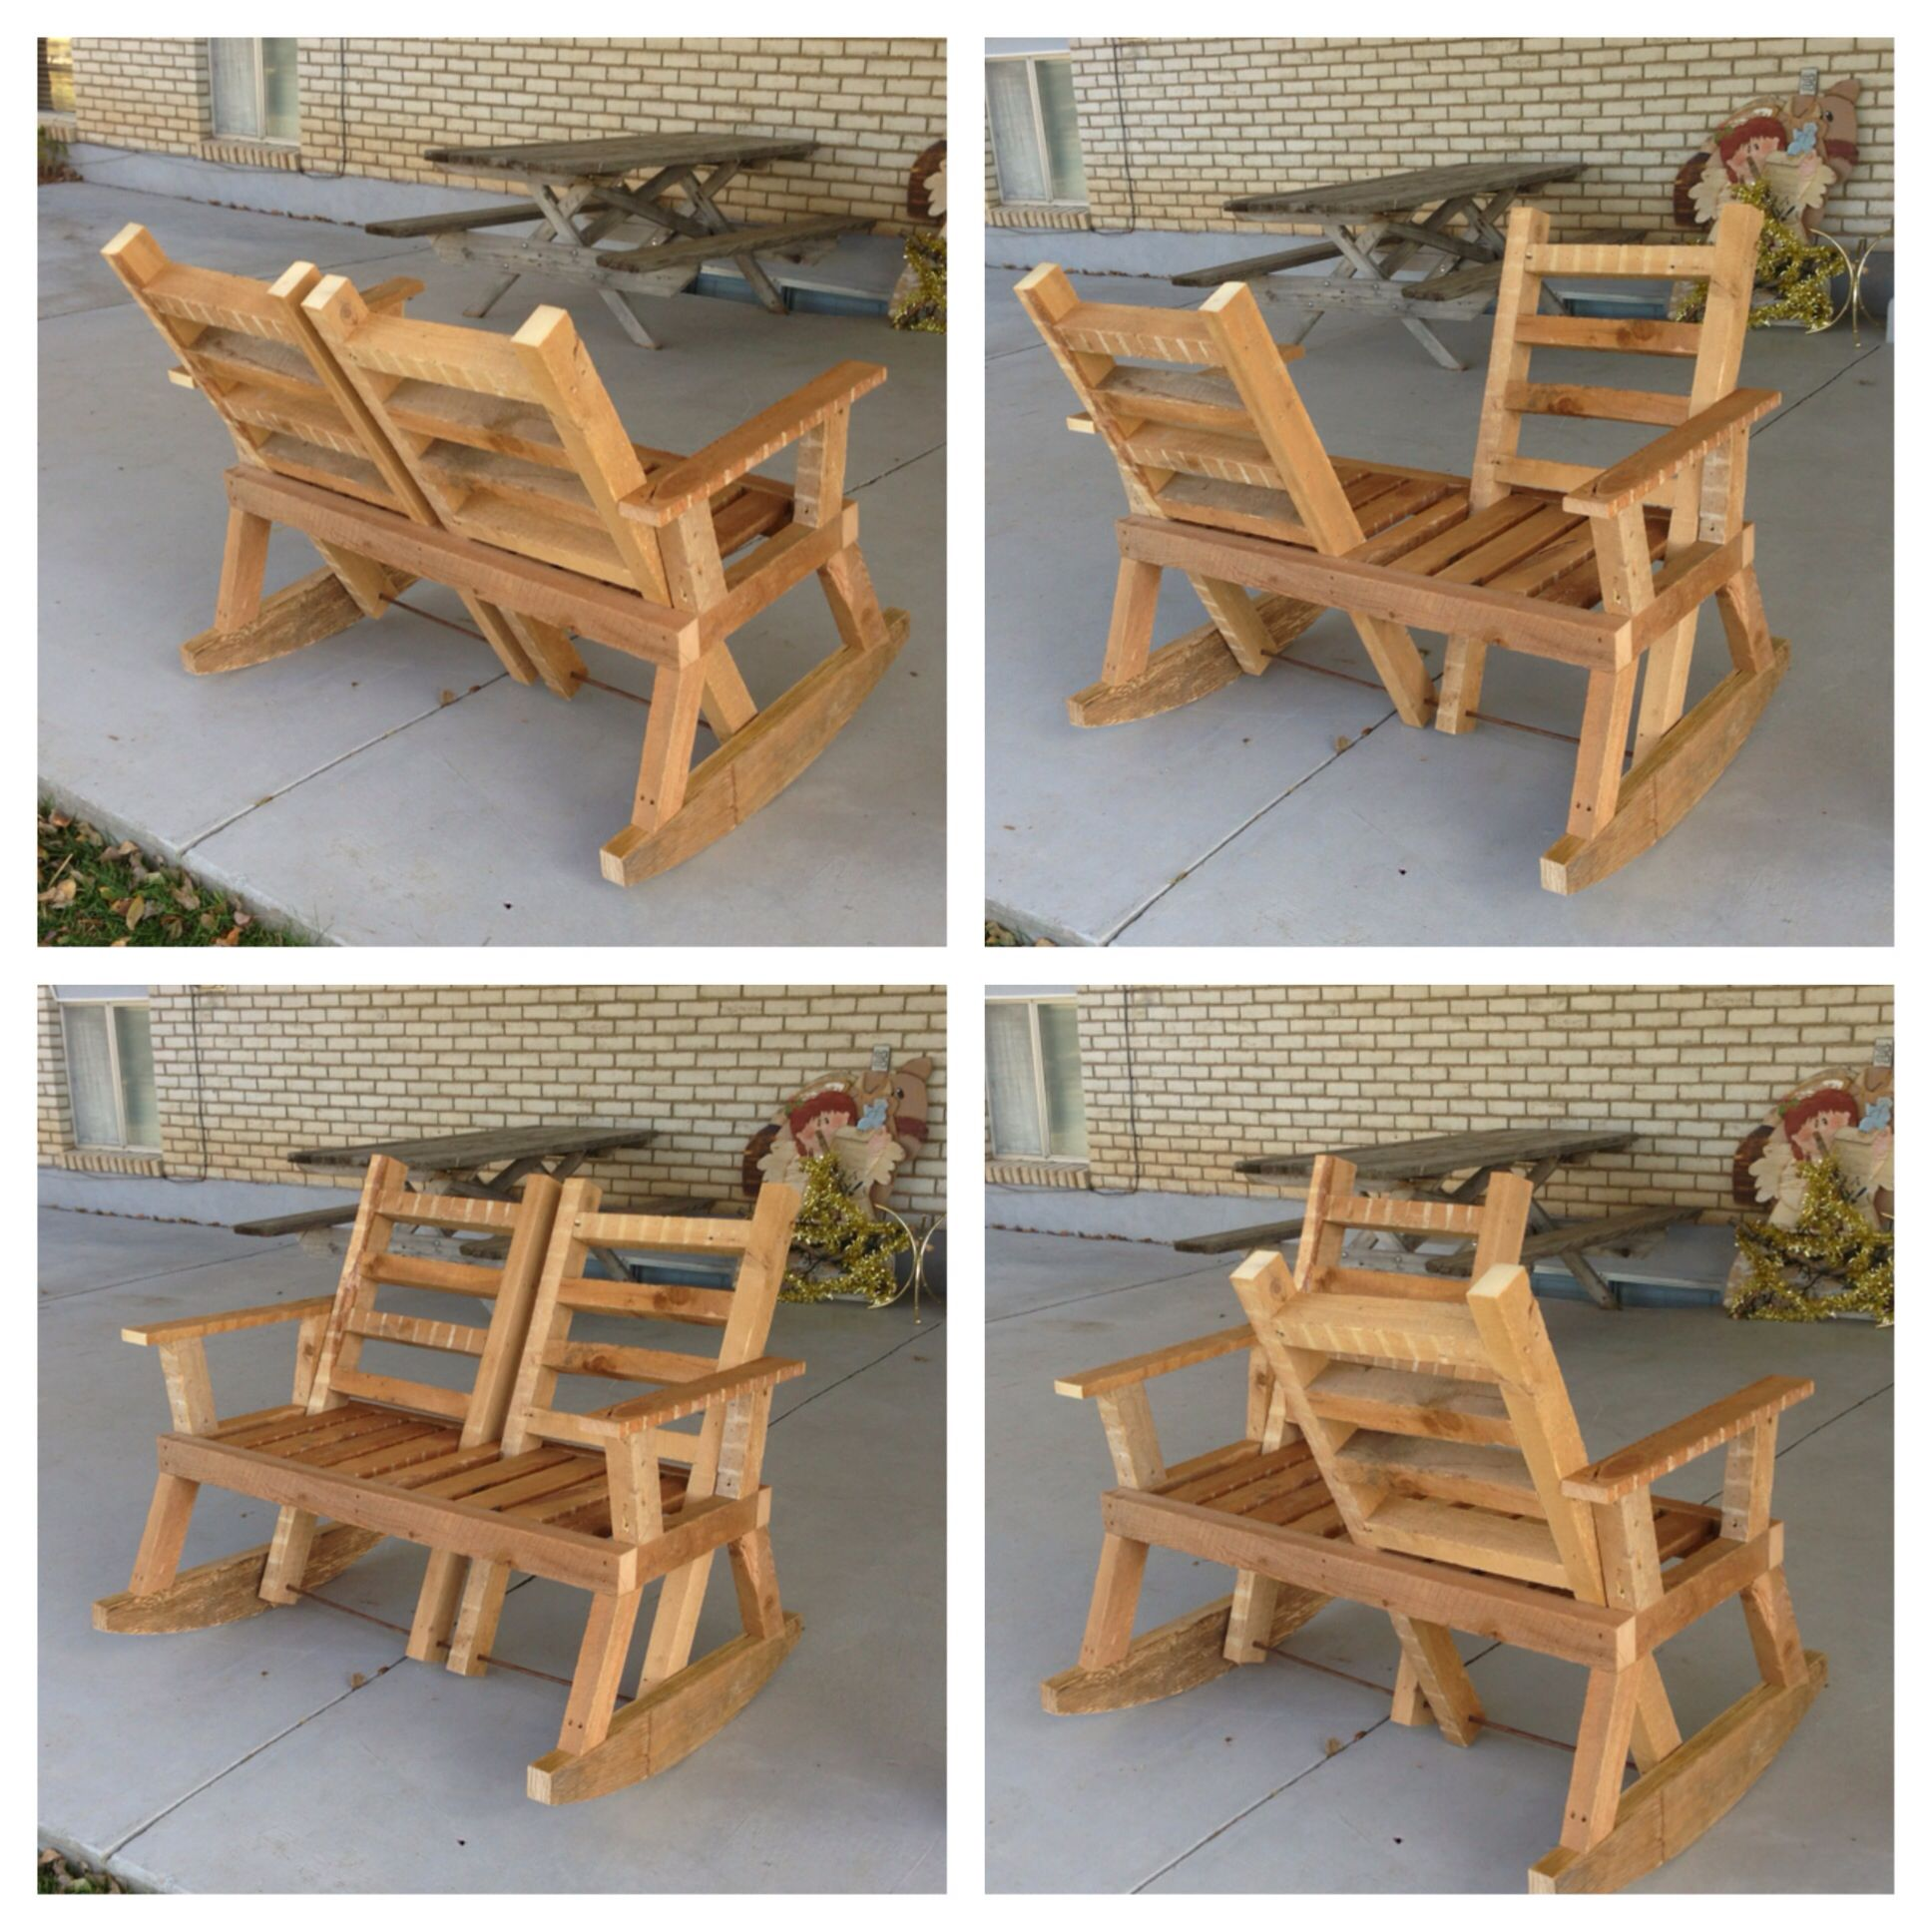 How to make a simple wooden rocking chair - Reversible Rocking Chair Sit And Talk And Face Any Way You Want To Built Diy